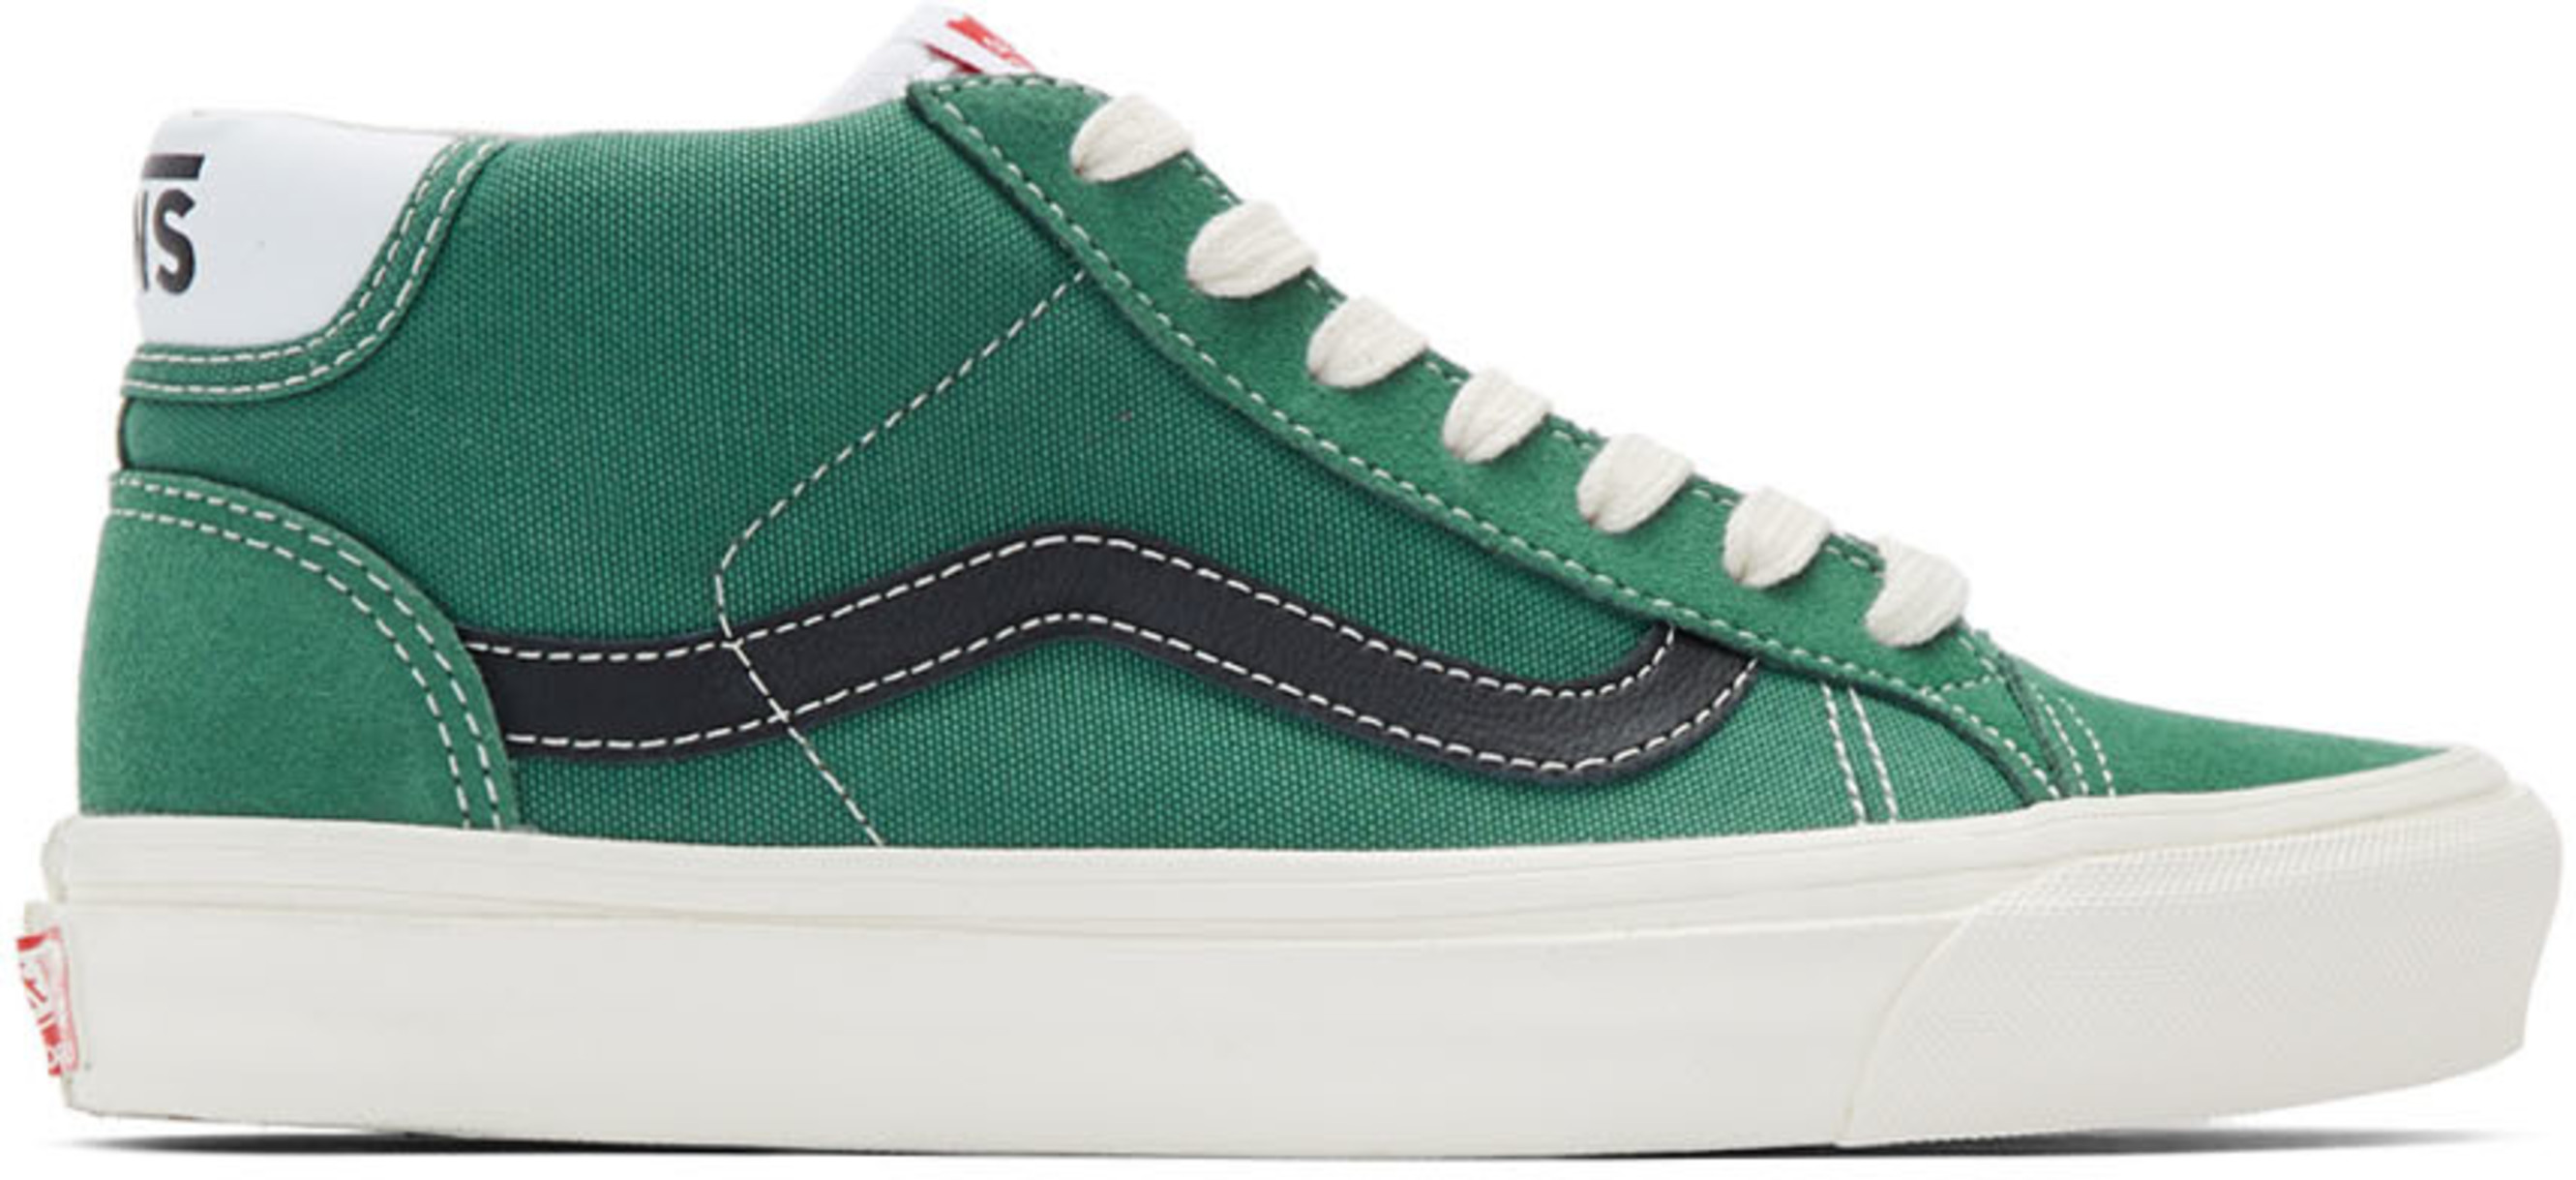 0558afba294 Designer sneakers for Men | SSENSE